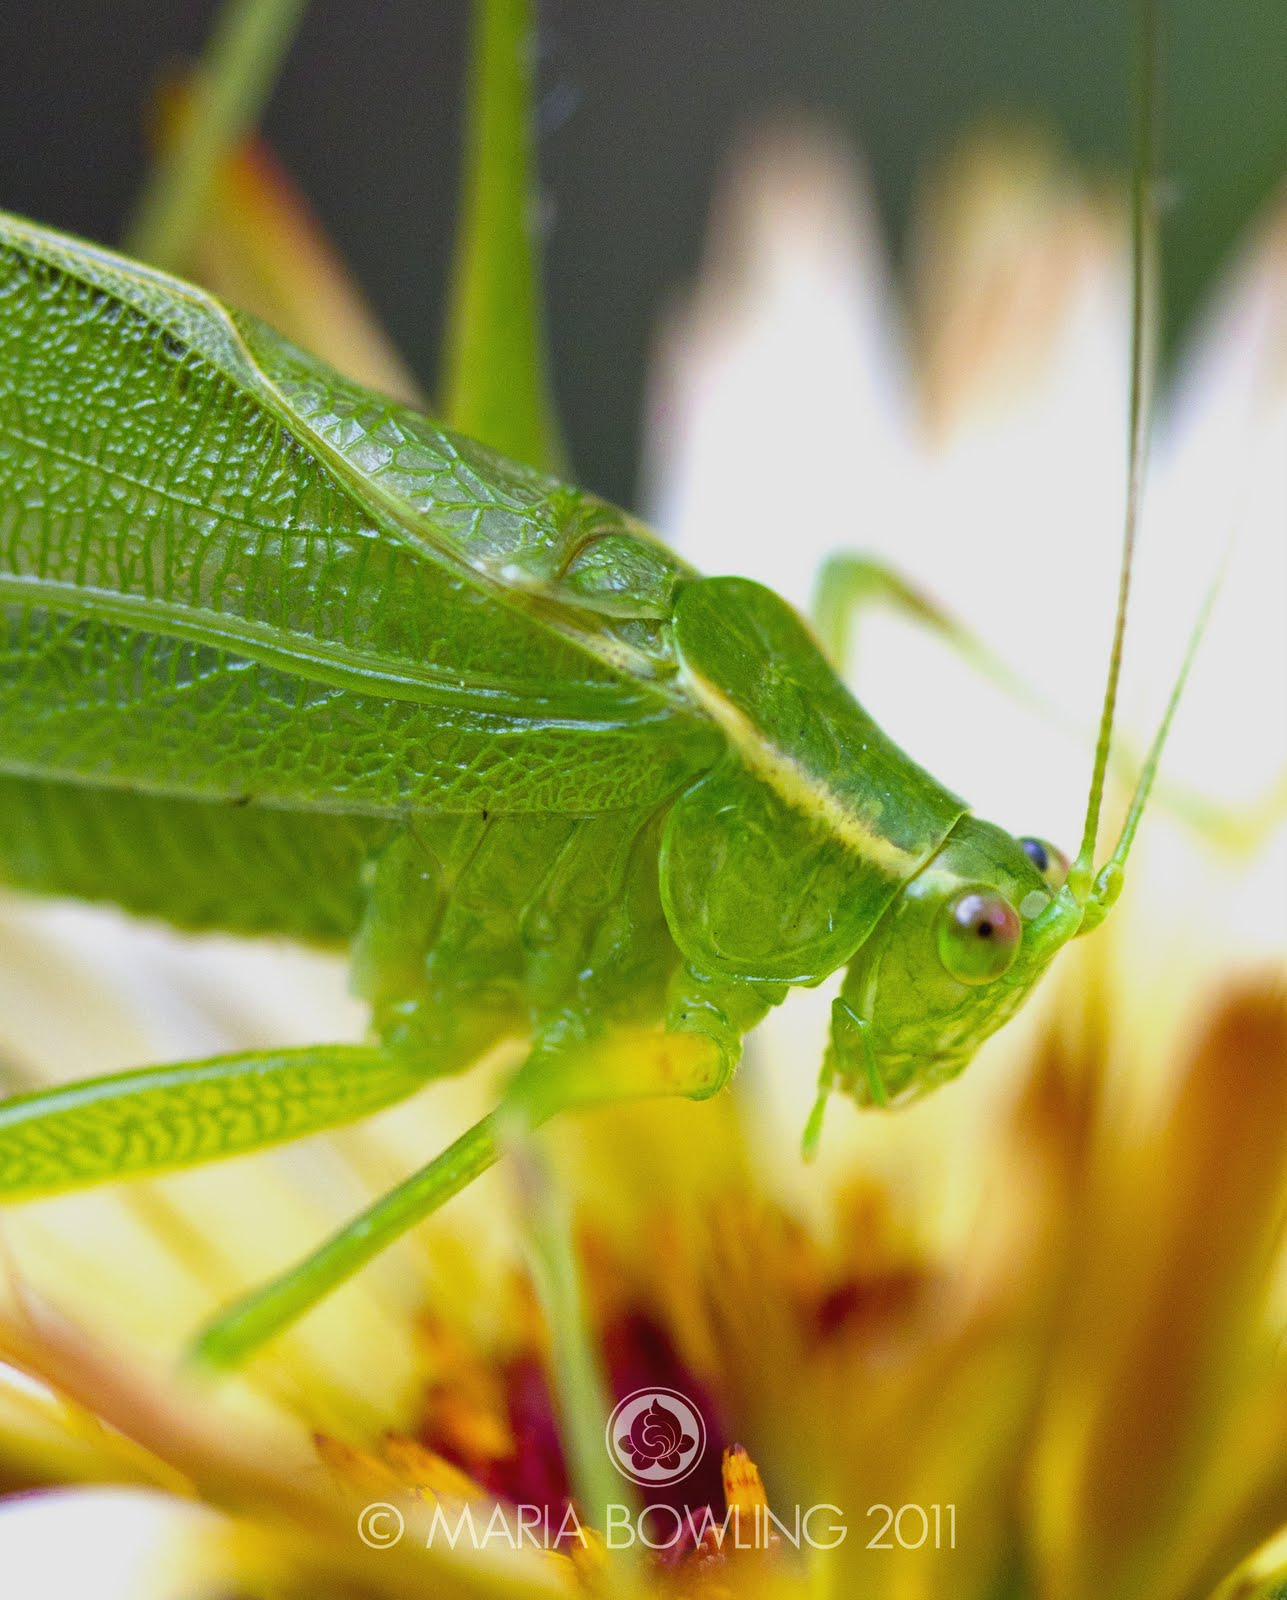 Pretty Medicine : A New Friend.....a Katydid (Tettigonia ...